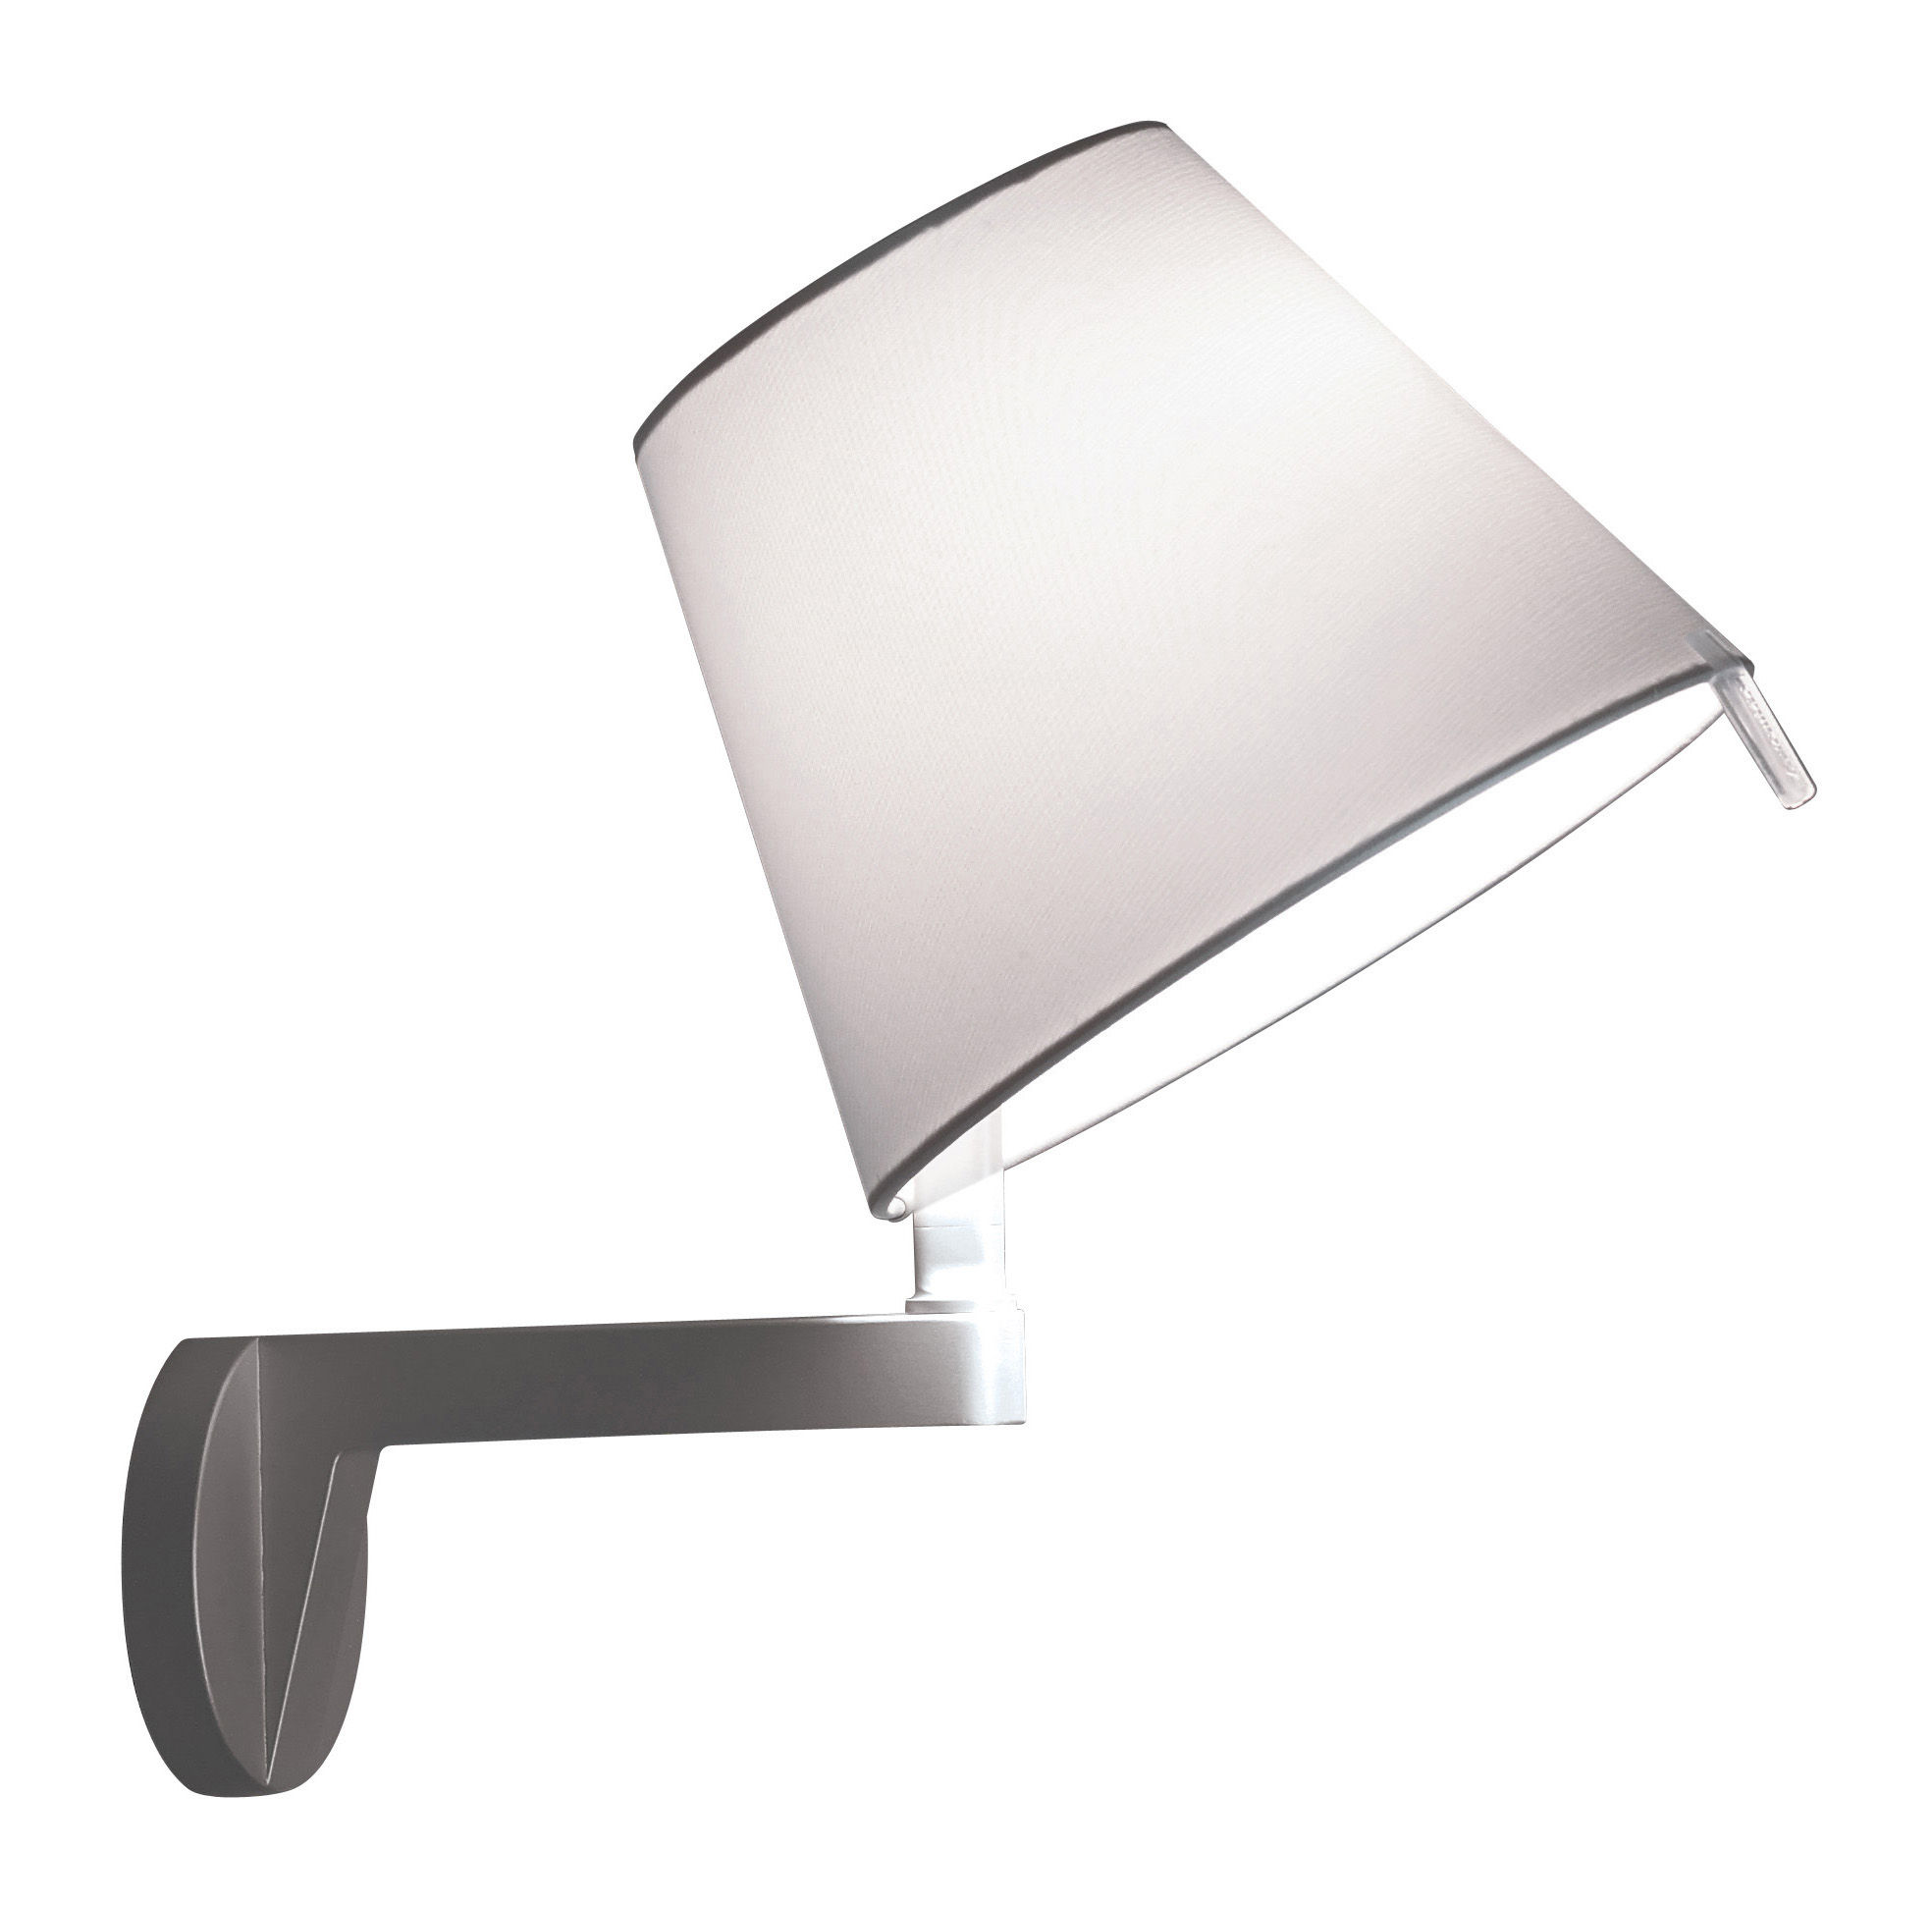 Lighting - Wall Lights - Melampo Wall light by Artemide - Aluminium grey - Aluminium, Fabric